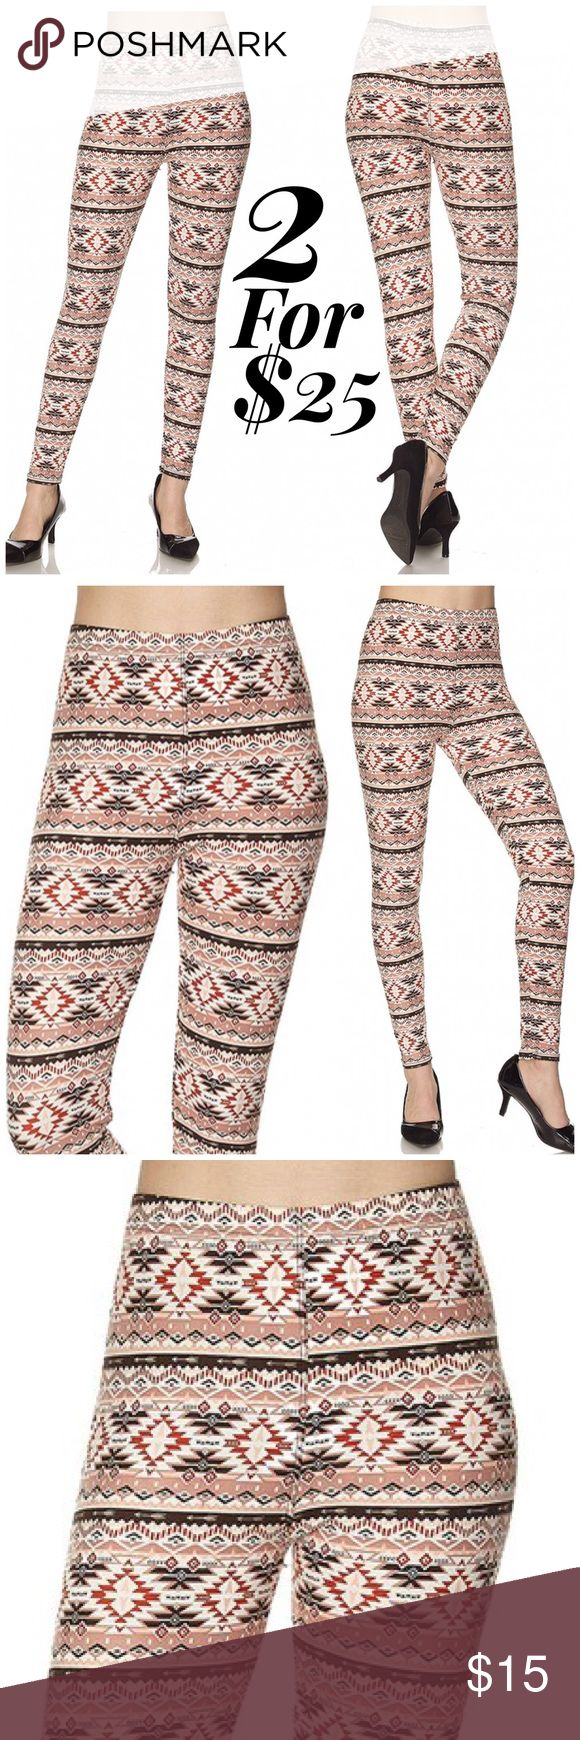 Aztec Print Brushed Ankle Leggings Get cozy with this cute and super soft brushed legging, featured in an Aztec Print . With its smooth, comfortable fit. Wear these with a dressy top and a sexy pair of heels for a classy going out look, or an oversized off-the-shoulder top for a casual day ensemble. Paneled elastic waistband Approx. 27 in. inseam 92% polyester, 8% spandex. ONE SIZE FITS MOST (up to XL) please note these are one size leggings. The listing has sizes such as S, M, L, XL for…